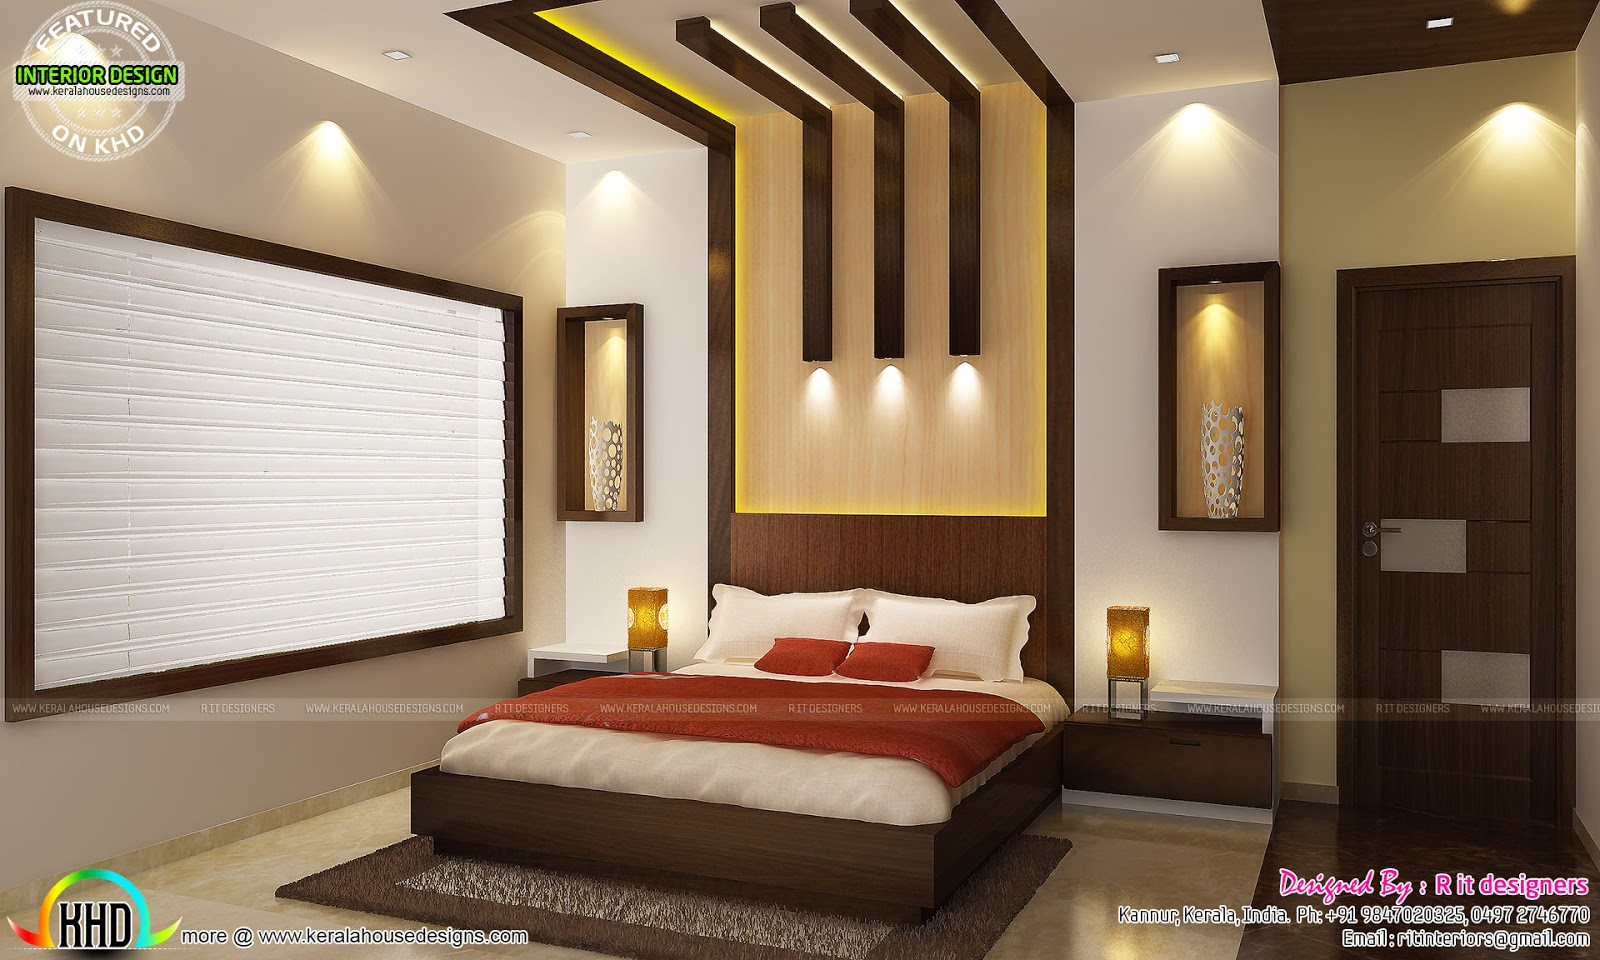 Kitchen living bedroom dining interior decor kerala for Interior design images for bedrooms